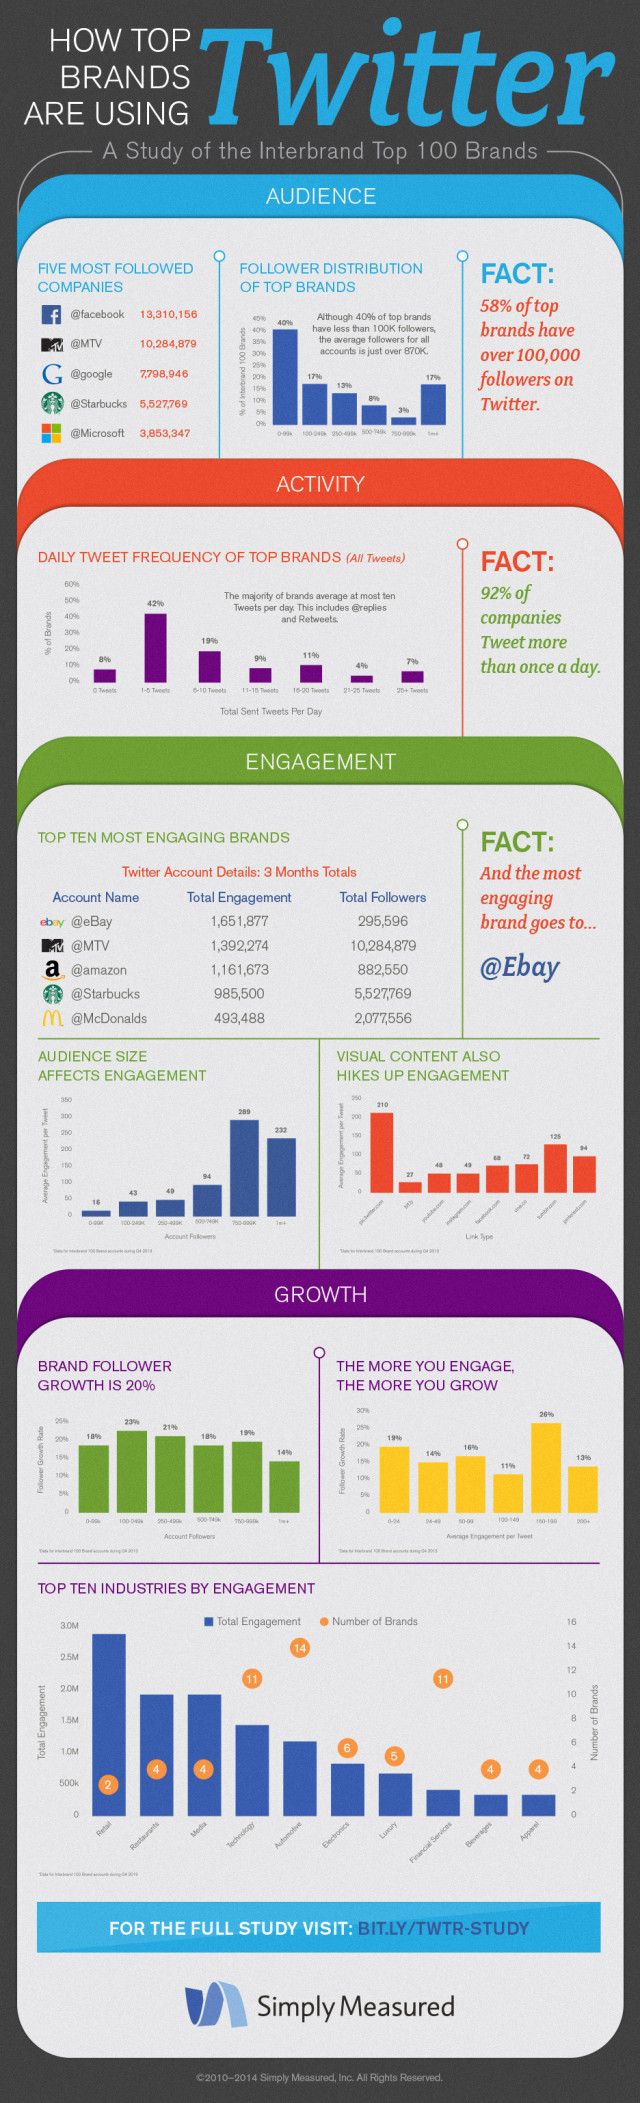 1396033439-these-most-engaging-brands-twitter-infographic